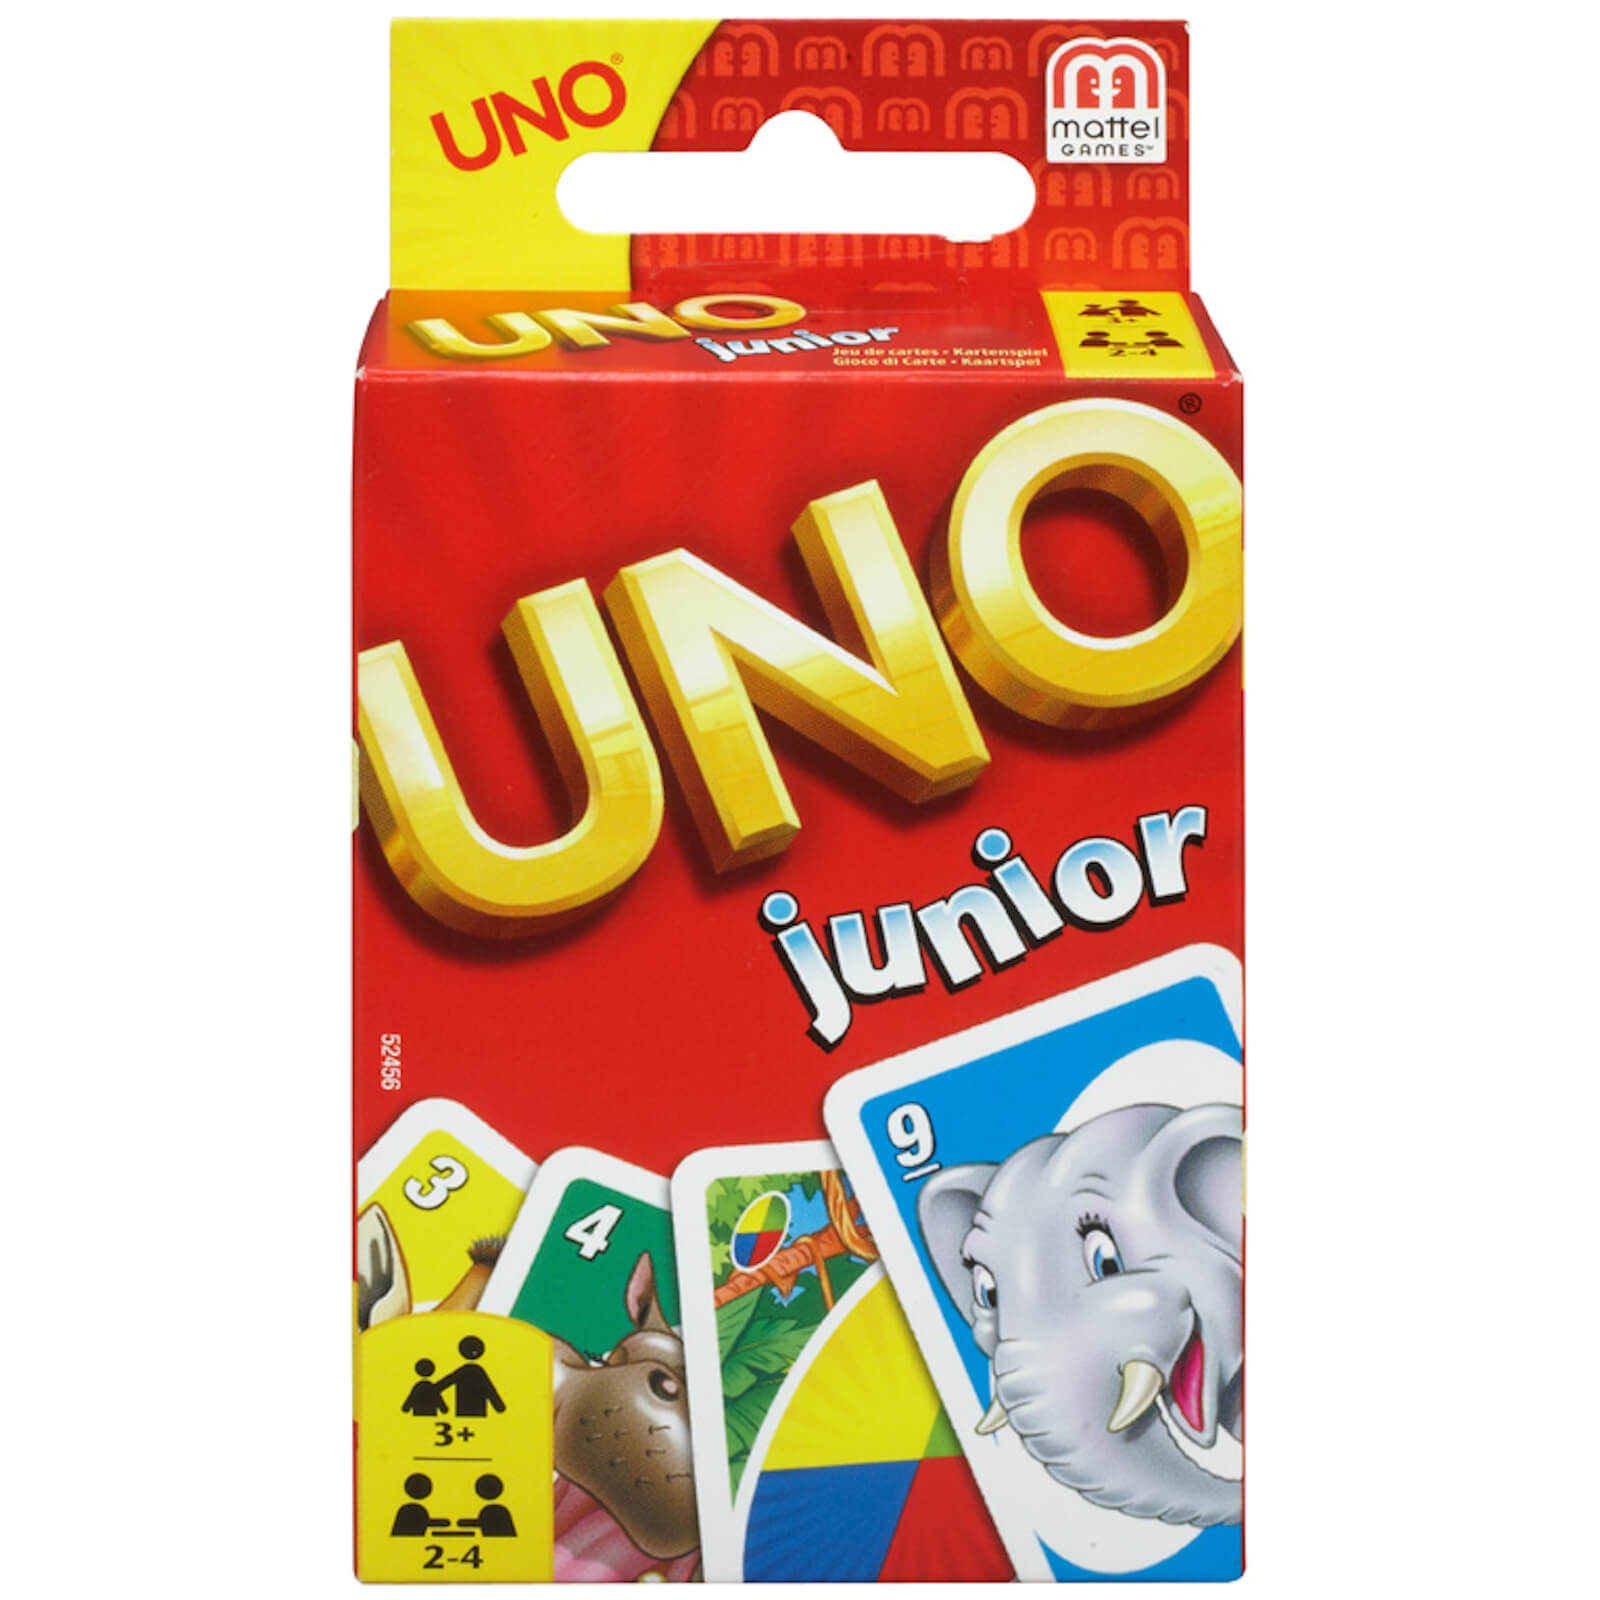 Image of Uno Junior Card Game